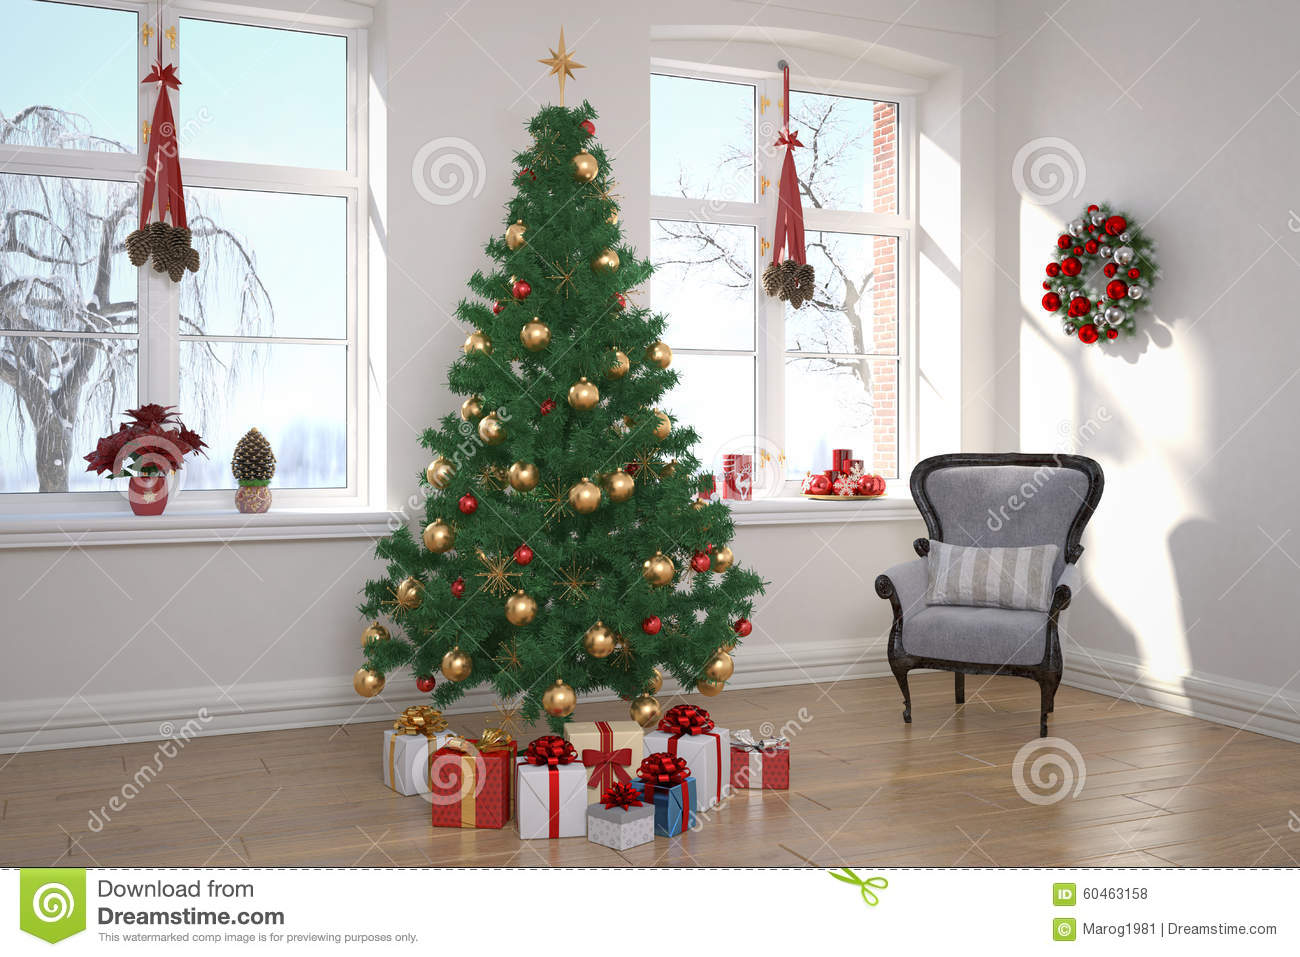 Apartment living room christmas stock photo image of wooden furnishing 60463158 for Christmas tree in living room photos